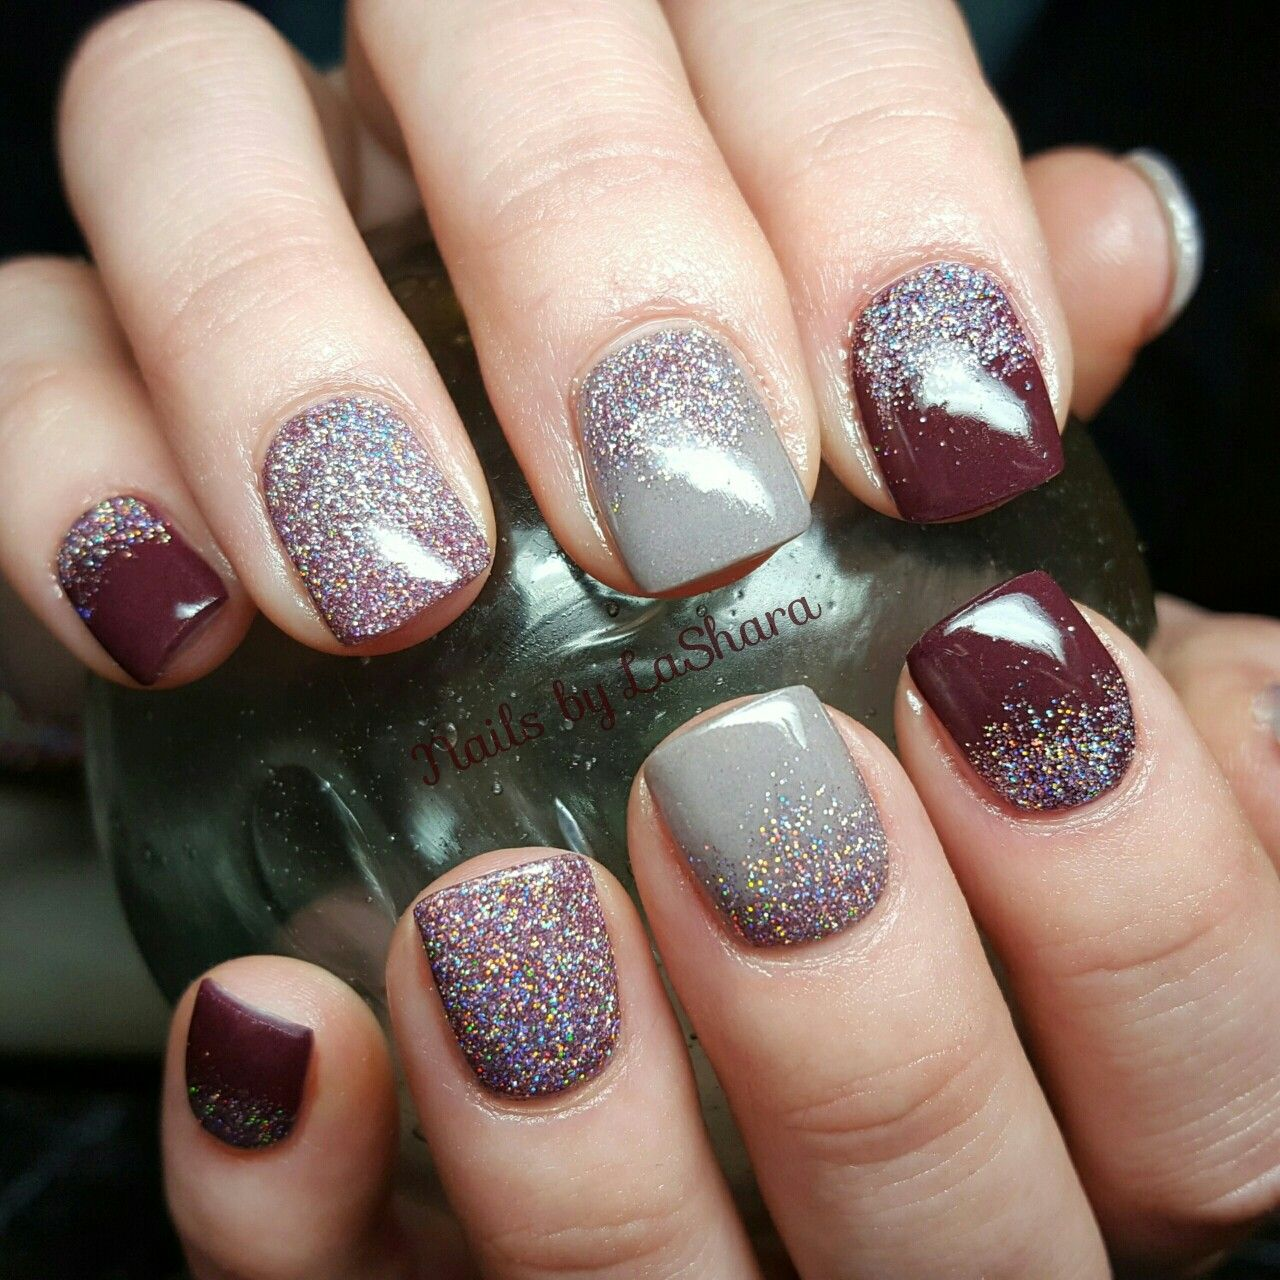 Best Christmas Gel Nails: 43 Gorgeous Nail Art Designs You Can Try This Fall